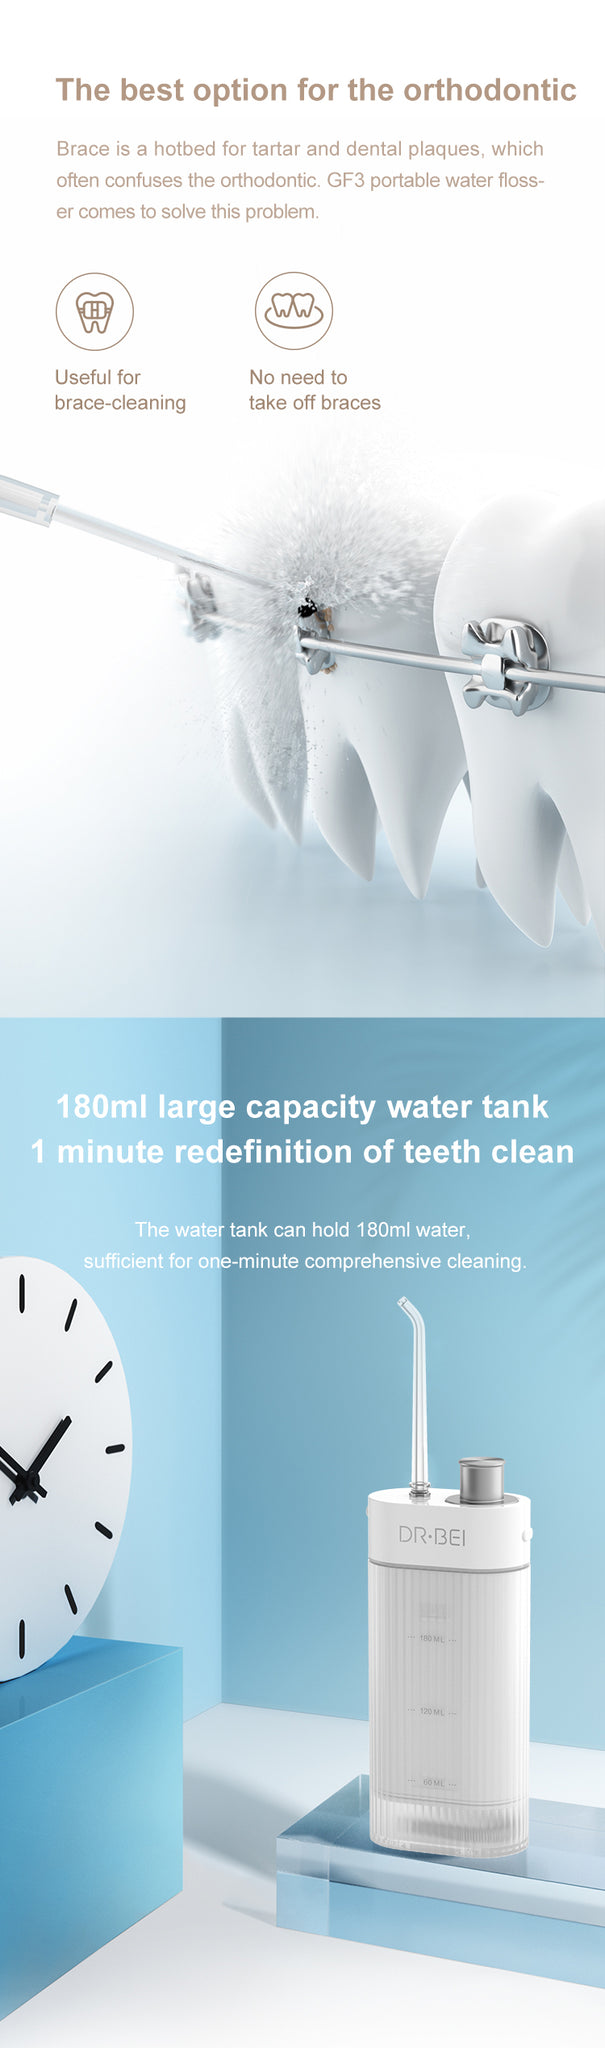 DR.BEI GF3/F3 Portable Dental Water Flosser  Xiaomi Youpin DR.BEI F3 Oral Irrigator Water Flosser Cordless Dental Water Jet Tank Portable Rechargeable Waterproof 3 Modes Teeth Cleaner